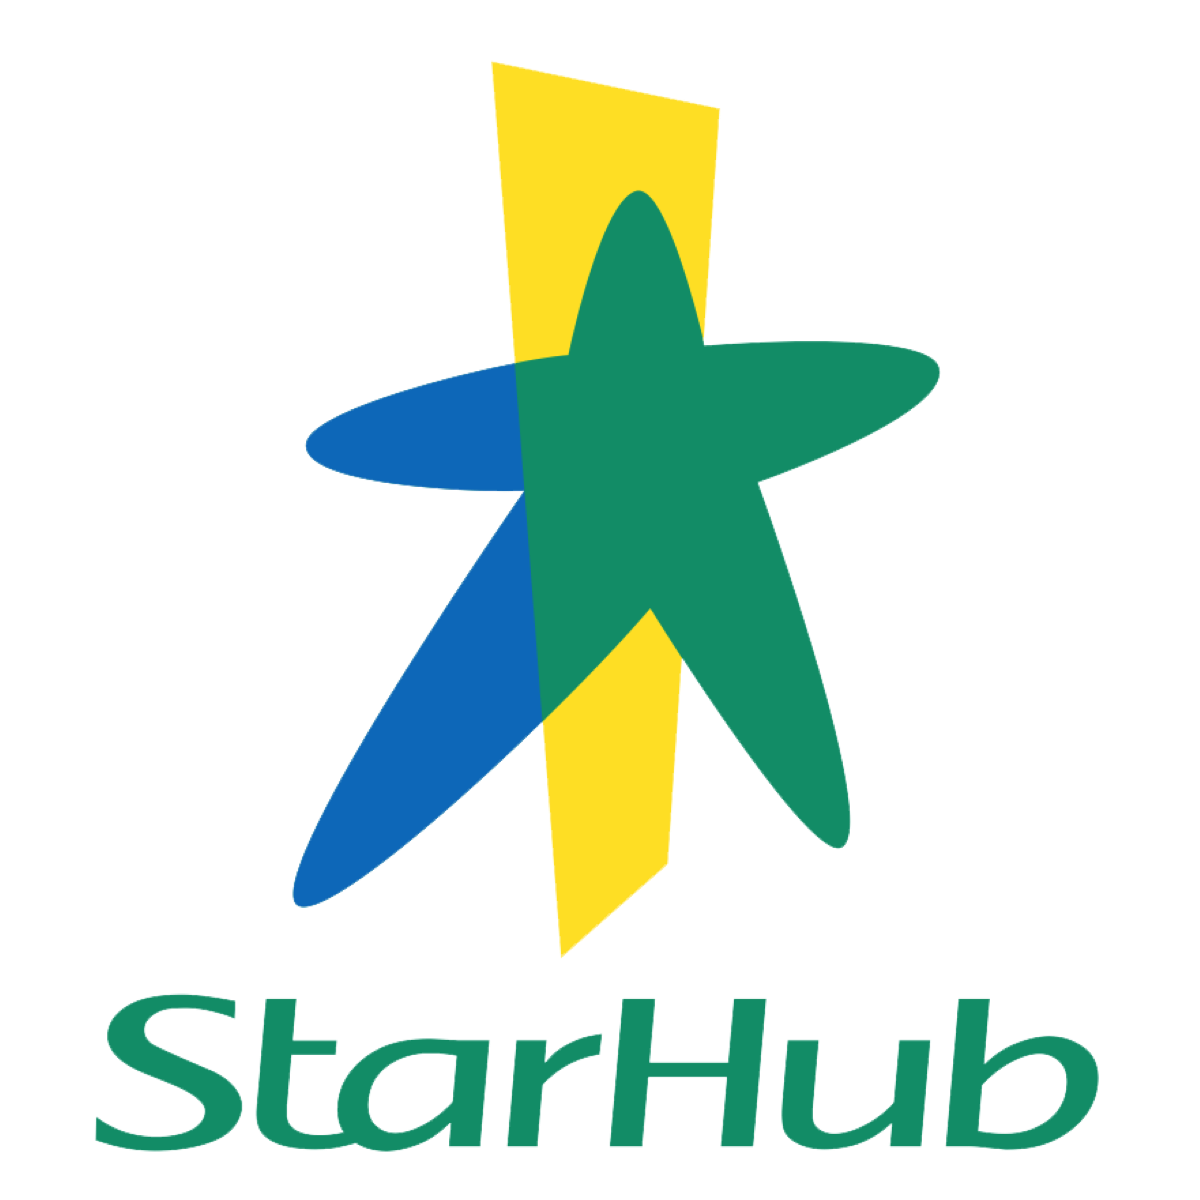 StarHub - UOB Kay Hian 2018-05-04: 1Q18 Revenue Contraction For Mobile And Pay-TV